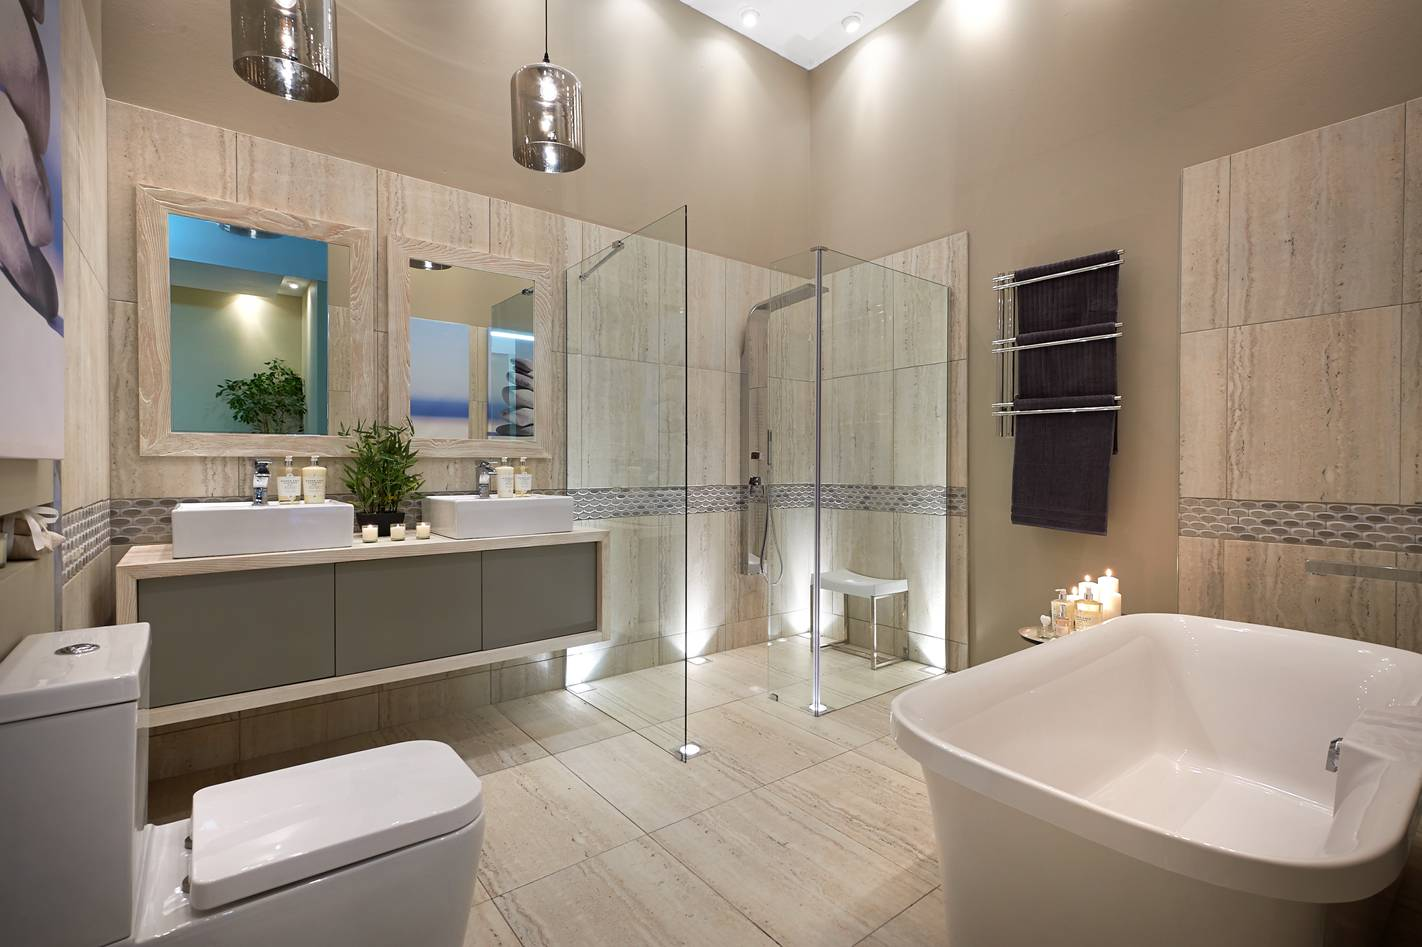 Top design tips for family bathrooms for Bathroom tips